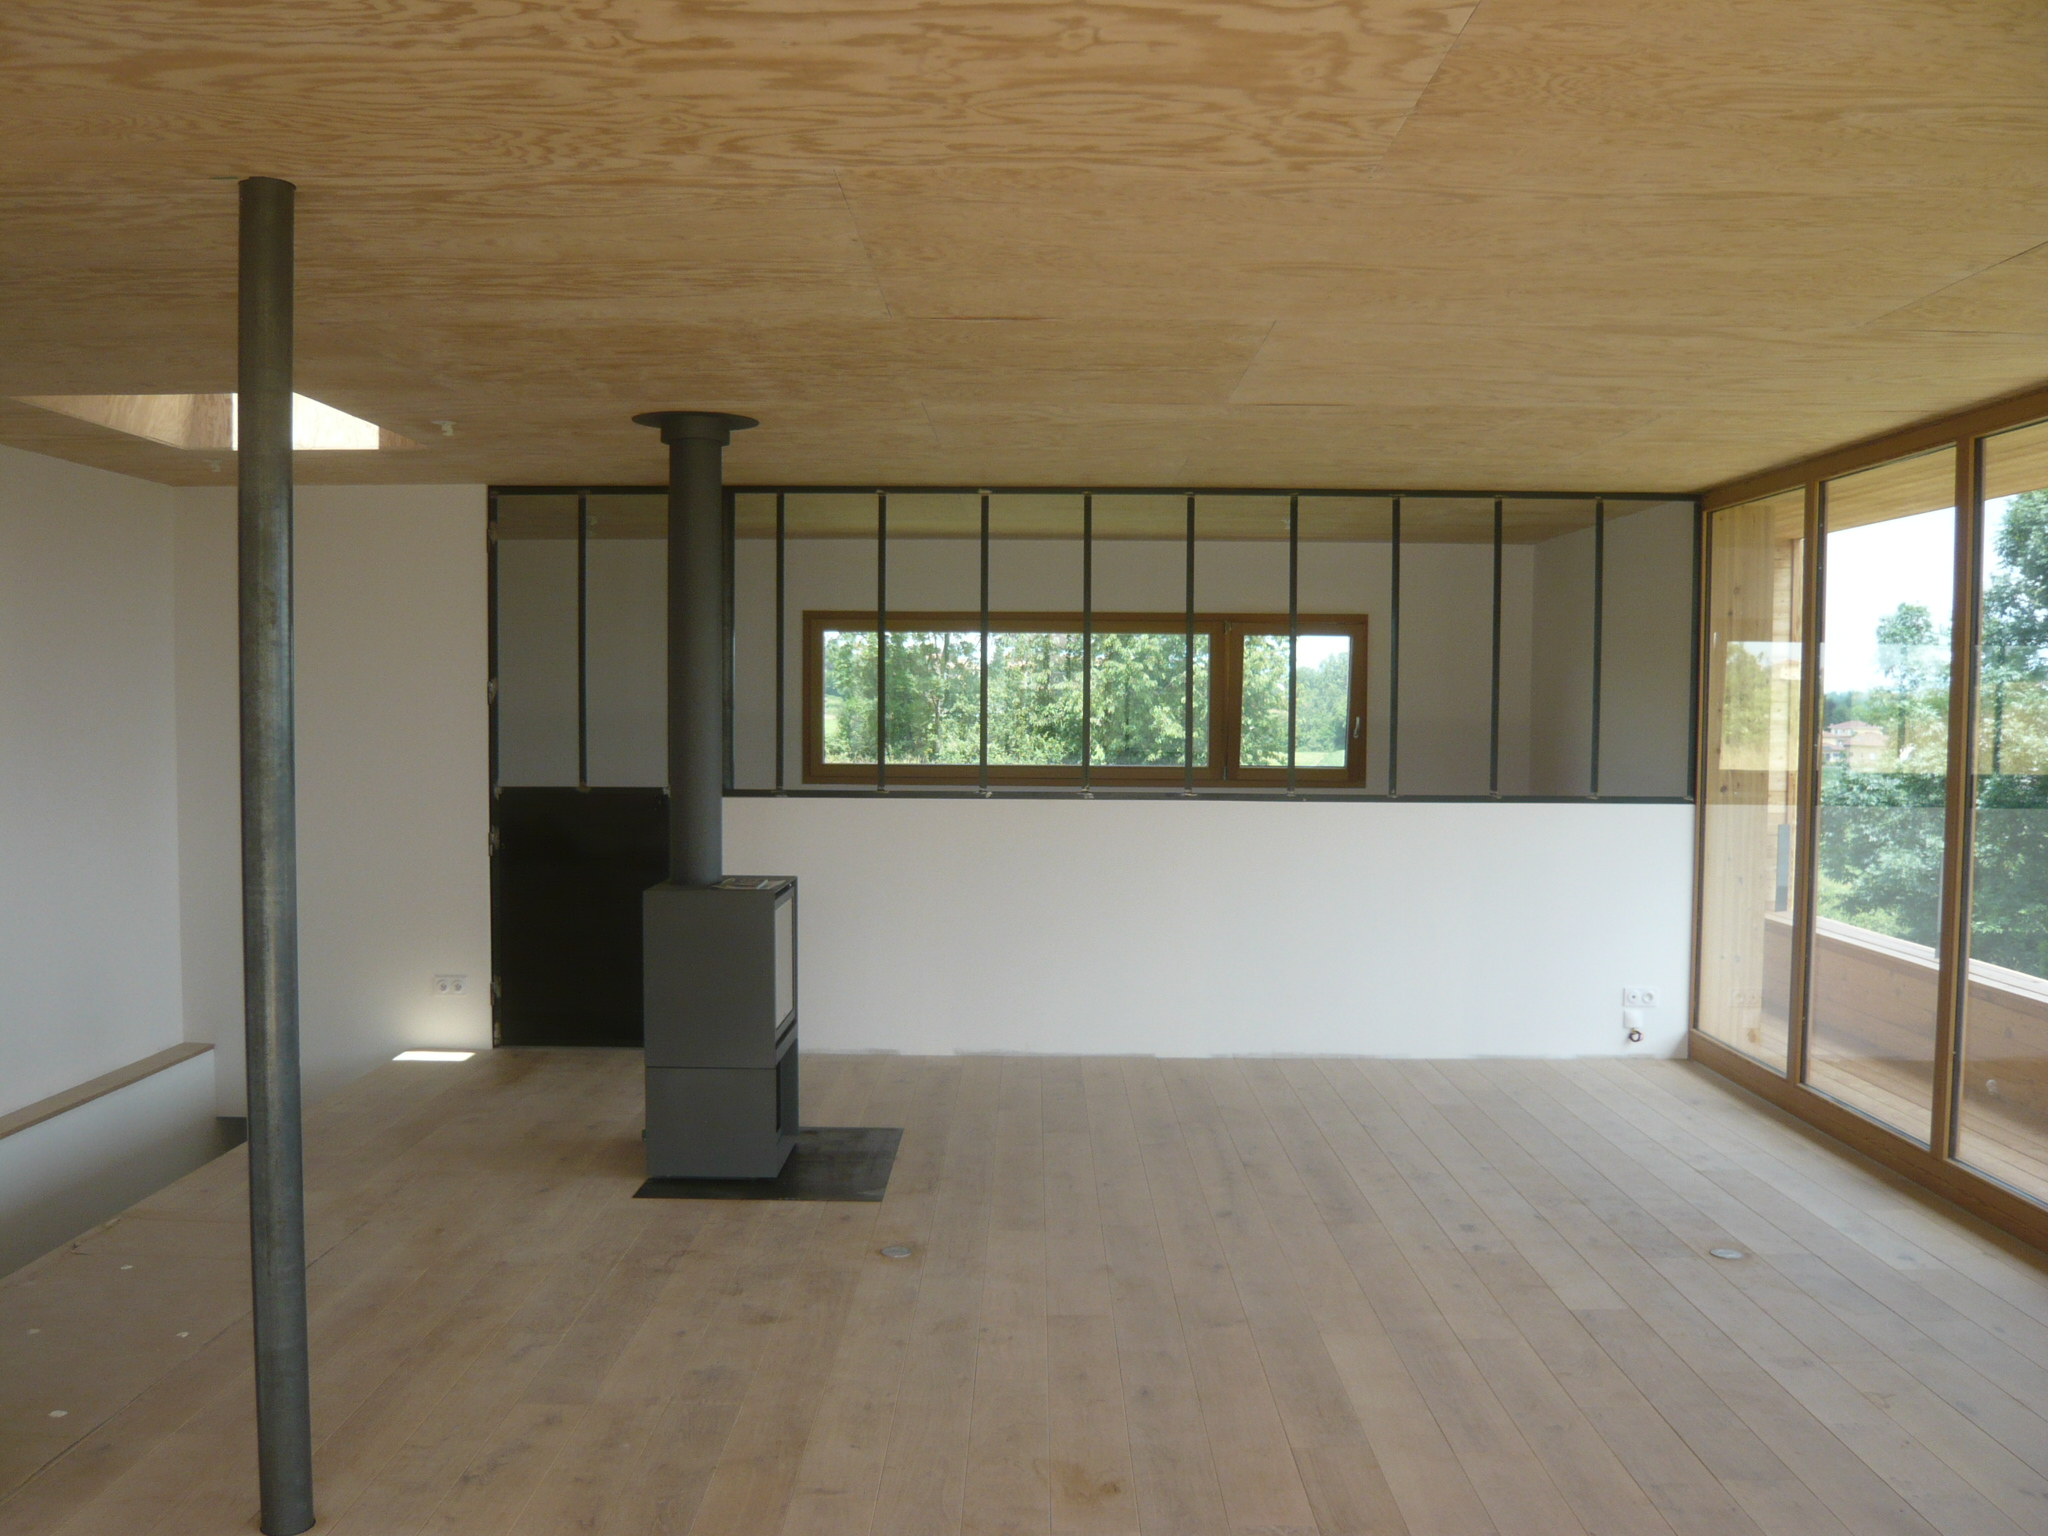 Interieur maison bois contemporaine maison eko for Photo interieur maison contemporaine